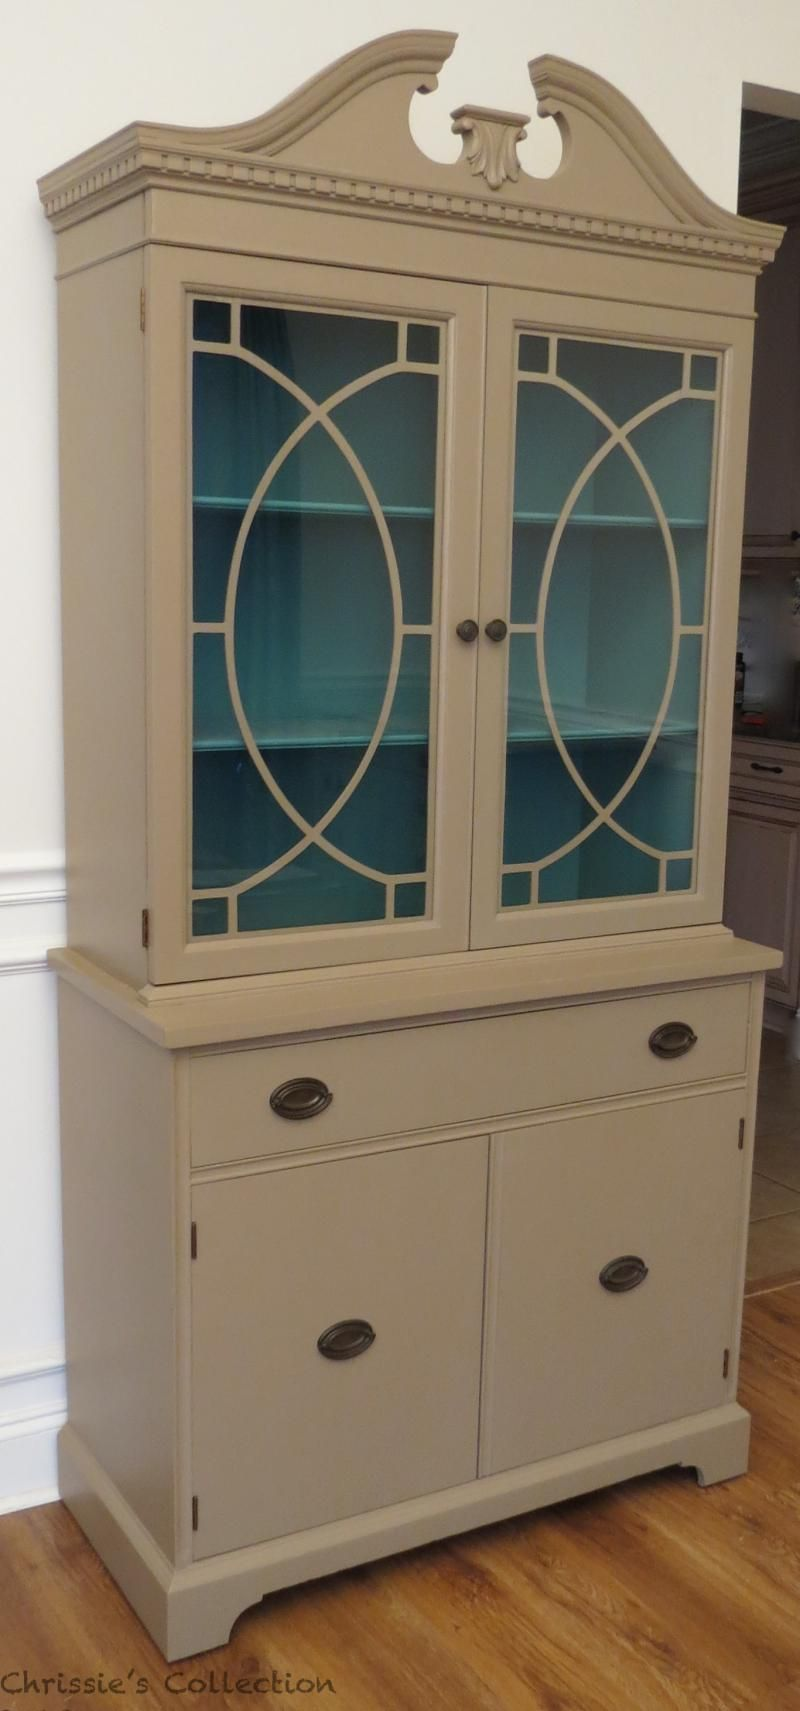 Chrissieus collection paint portfolio china cabinets home